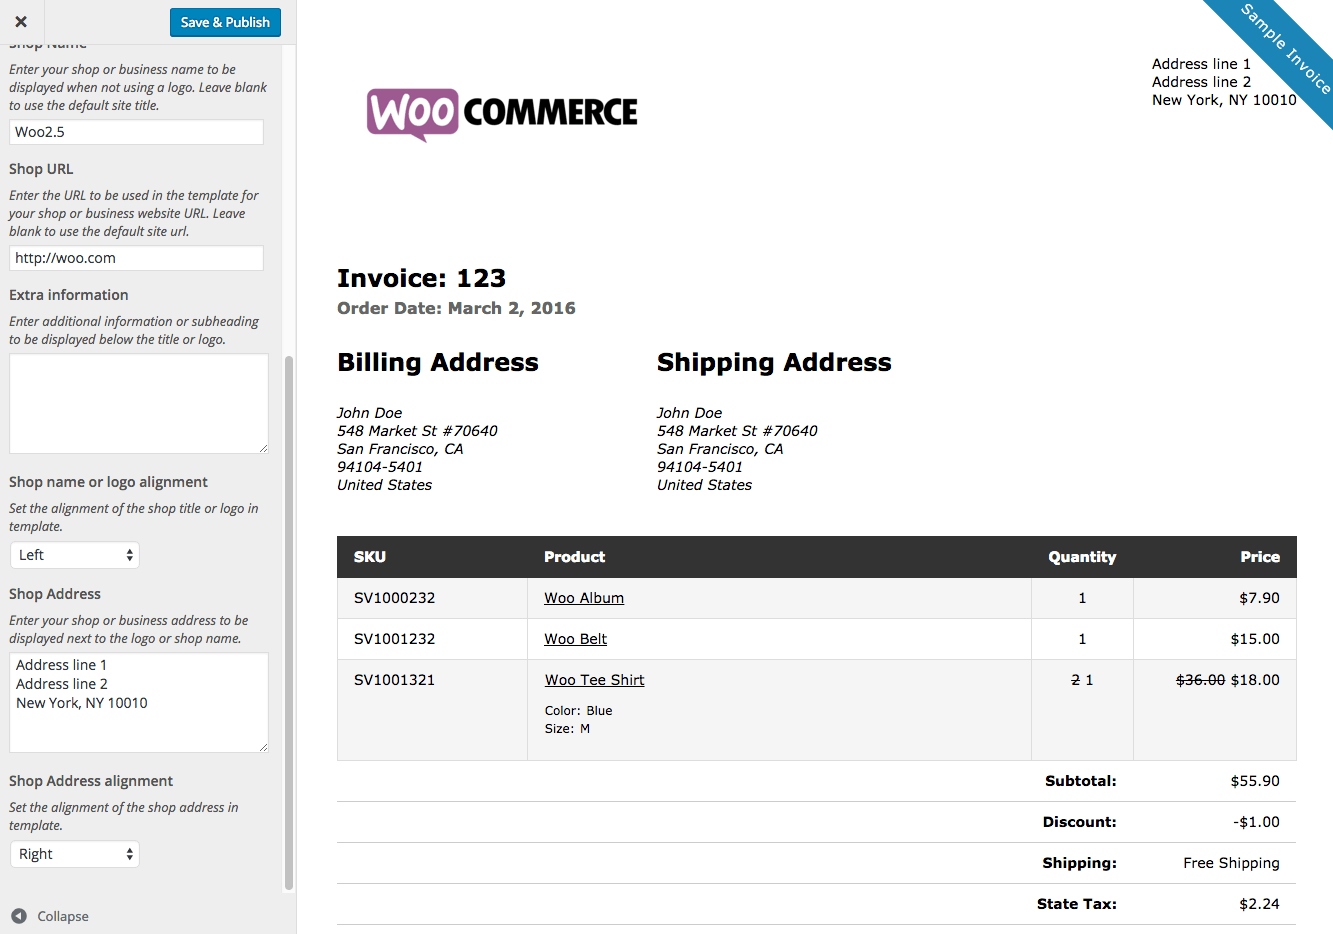 Barneybonesus  Wonderful Woocommerce Print Invoices Amp Packing Lists  Woocommerce Docs With Fascinating Woocommerce Print Invoices  Packing Lists Customizer With Astonishing Invoice For Website Design Also Settle Invoice In Addition Excel Spreadsheet Invoice And Free Template Invoices As Well As Mexico Commercial Invoice Additionally Sales Order Invoice From Docswoocommercecom With Barneybonesus  Fascinating Woocommerce Print Invoices Amp Packing Lists  Woocommerce Docs With Astonishing Woocommerce Print Invoices  Packing Lists Customizer And Wonderful Invoice For Website Design Also Settle Invoice In Addition Excel Spreadsheet Invoice From Docswoocommercecom